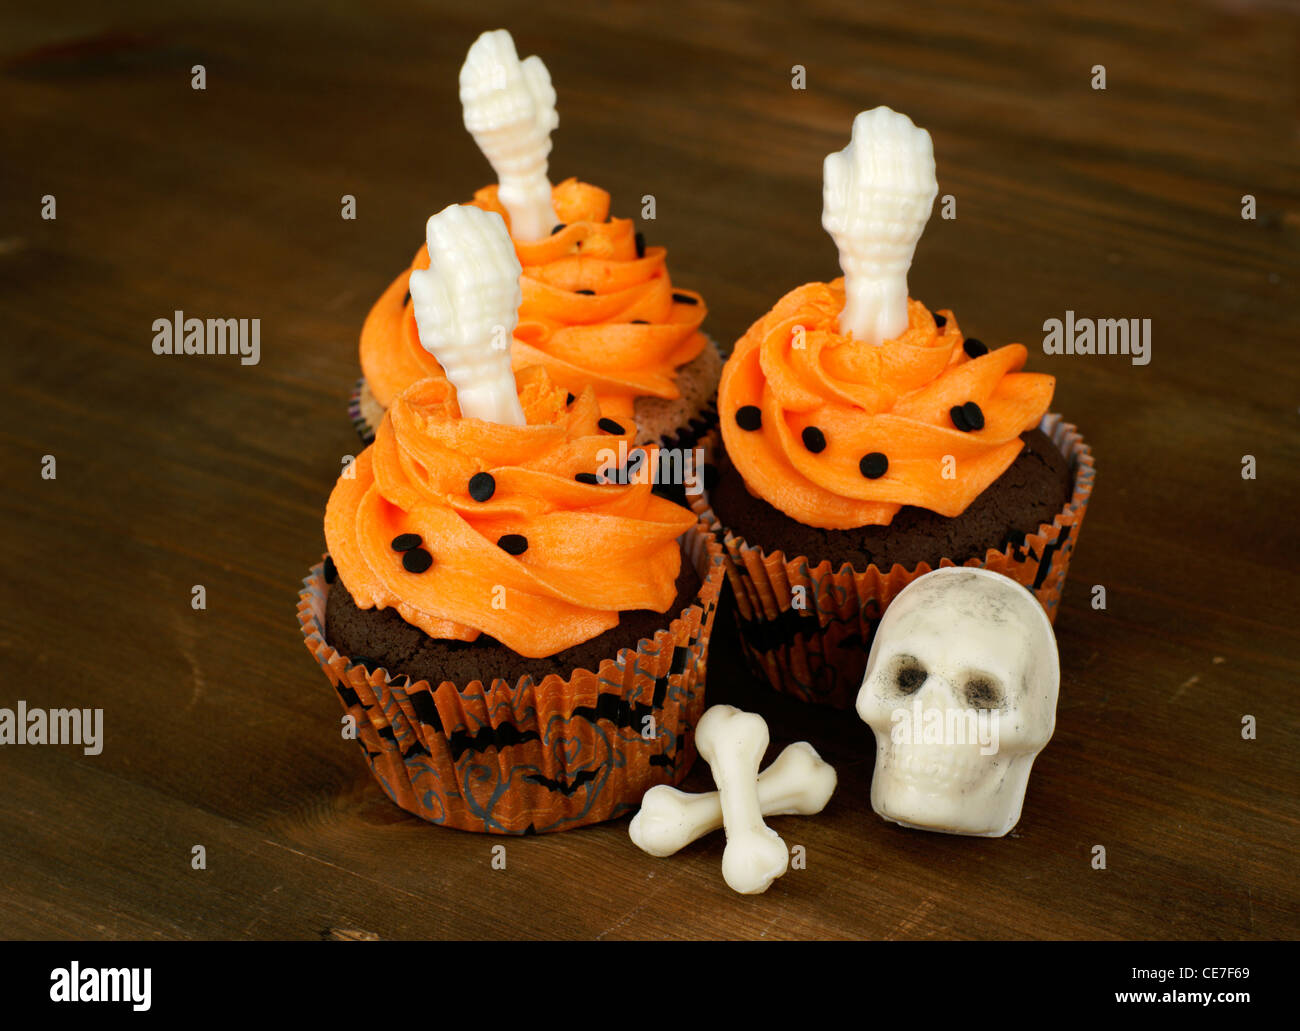 Cupcakes decorated with white chocolate skeleton parts for Halloween - Stock Image